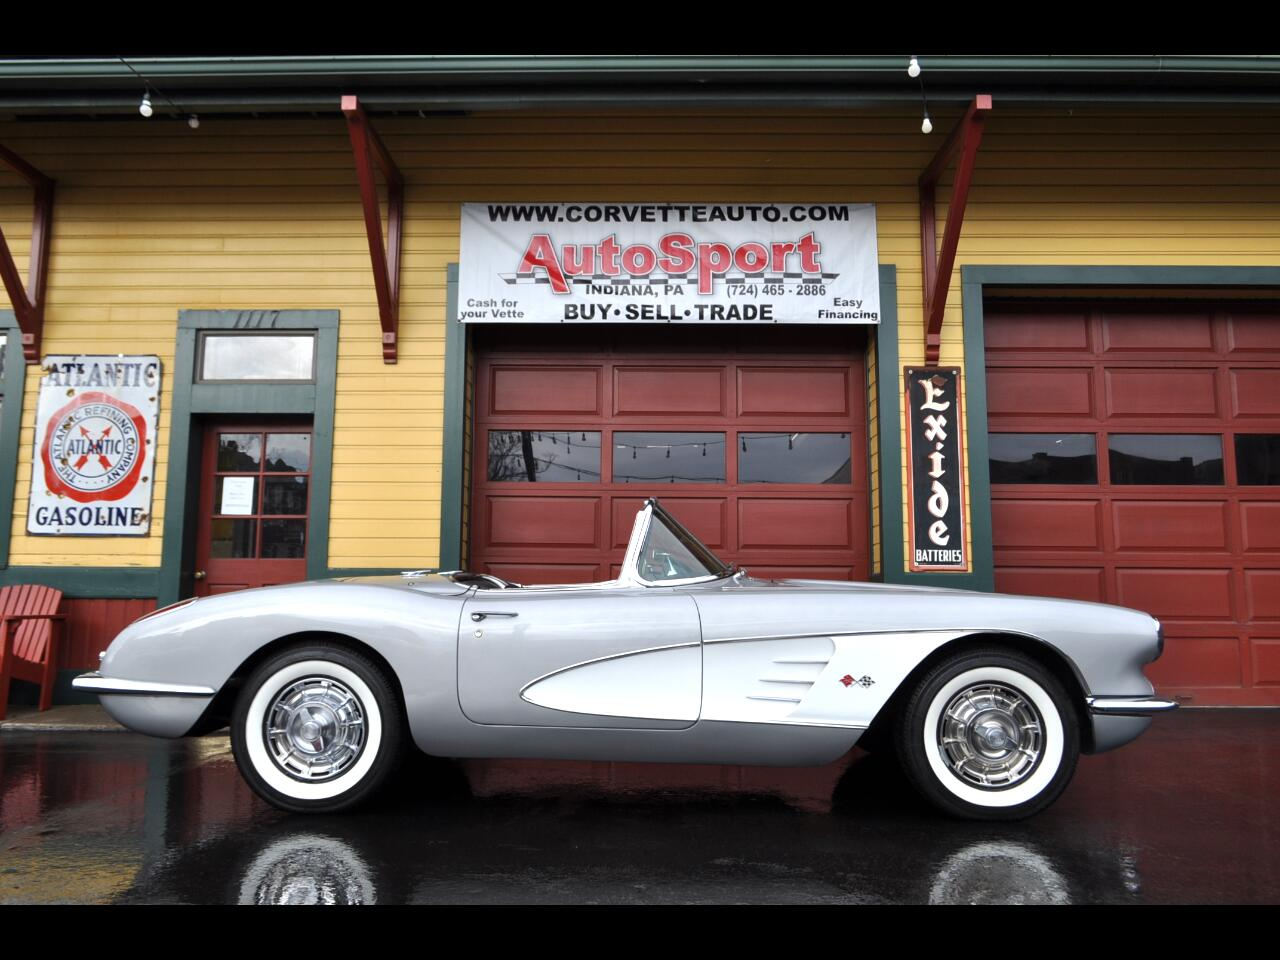 1959 Chevrolet Corvette 270hp 2x4's Frame Off Restored!